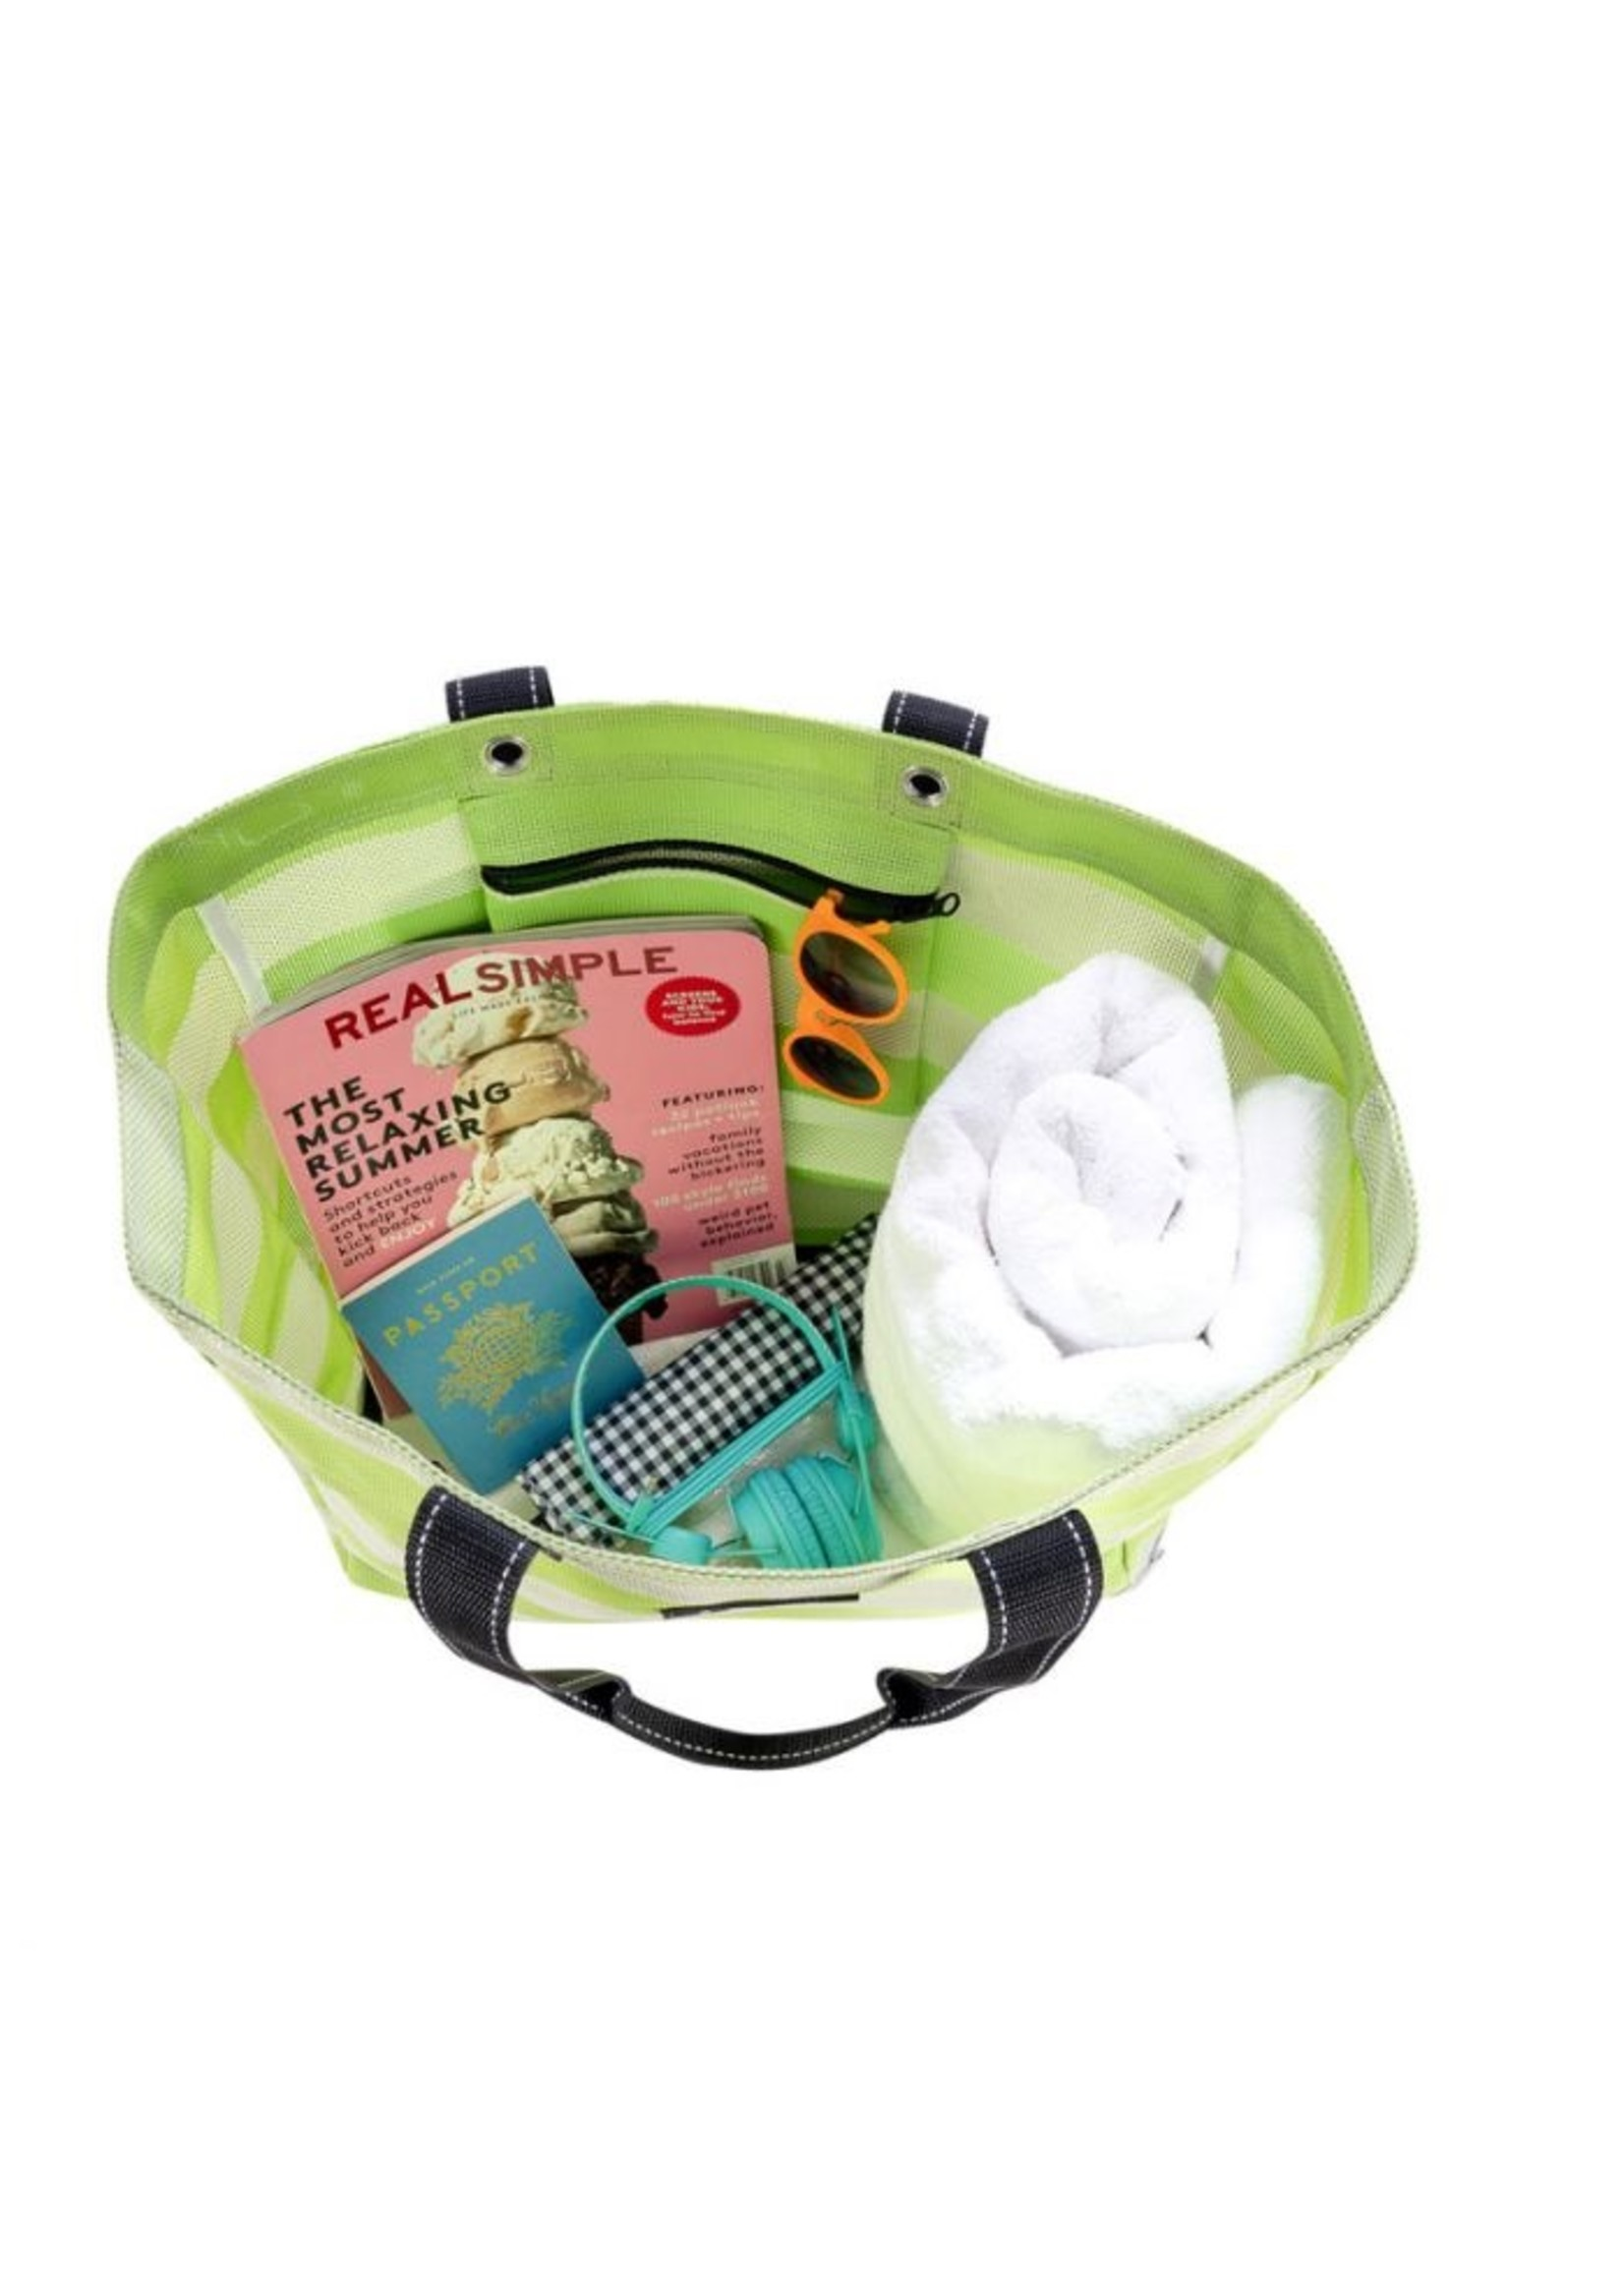 scout by bungalow Scout Bucket List Pacific Pear